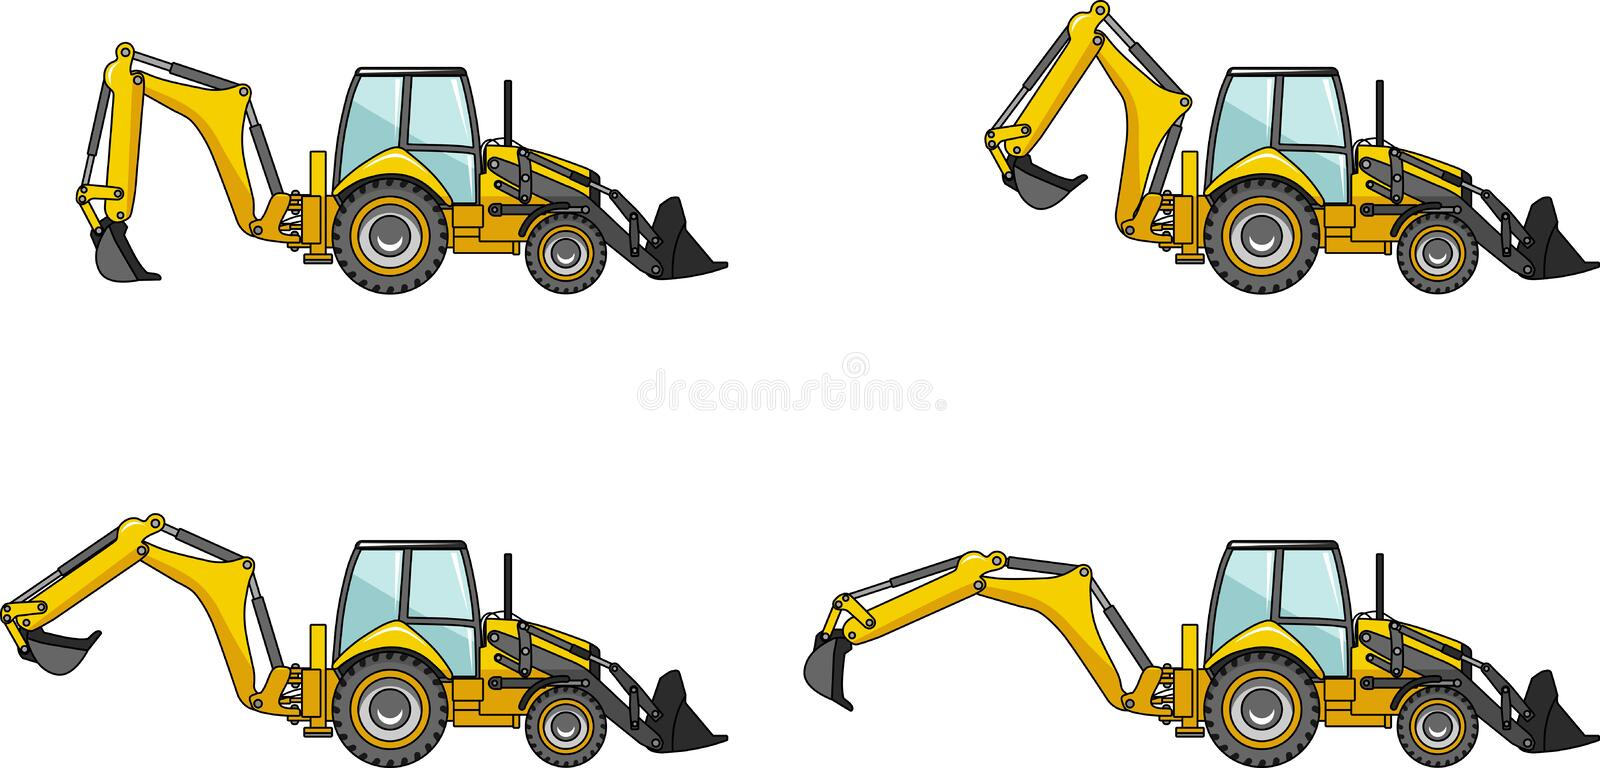 Backhoe loaders. Heavy construction machines. Detailed illustration of backhoe loaders, heavy equipment and machinery stock illustration